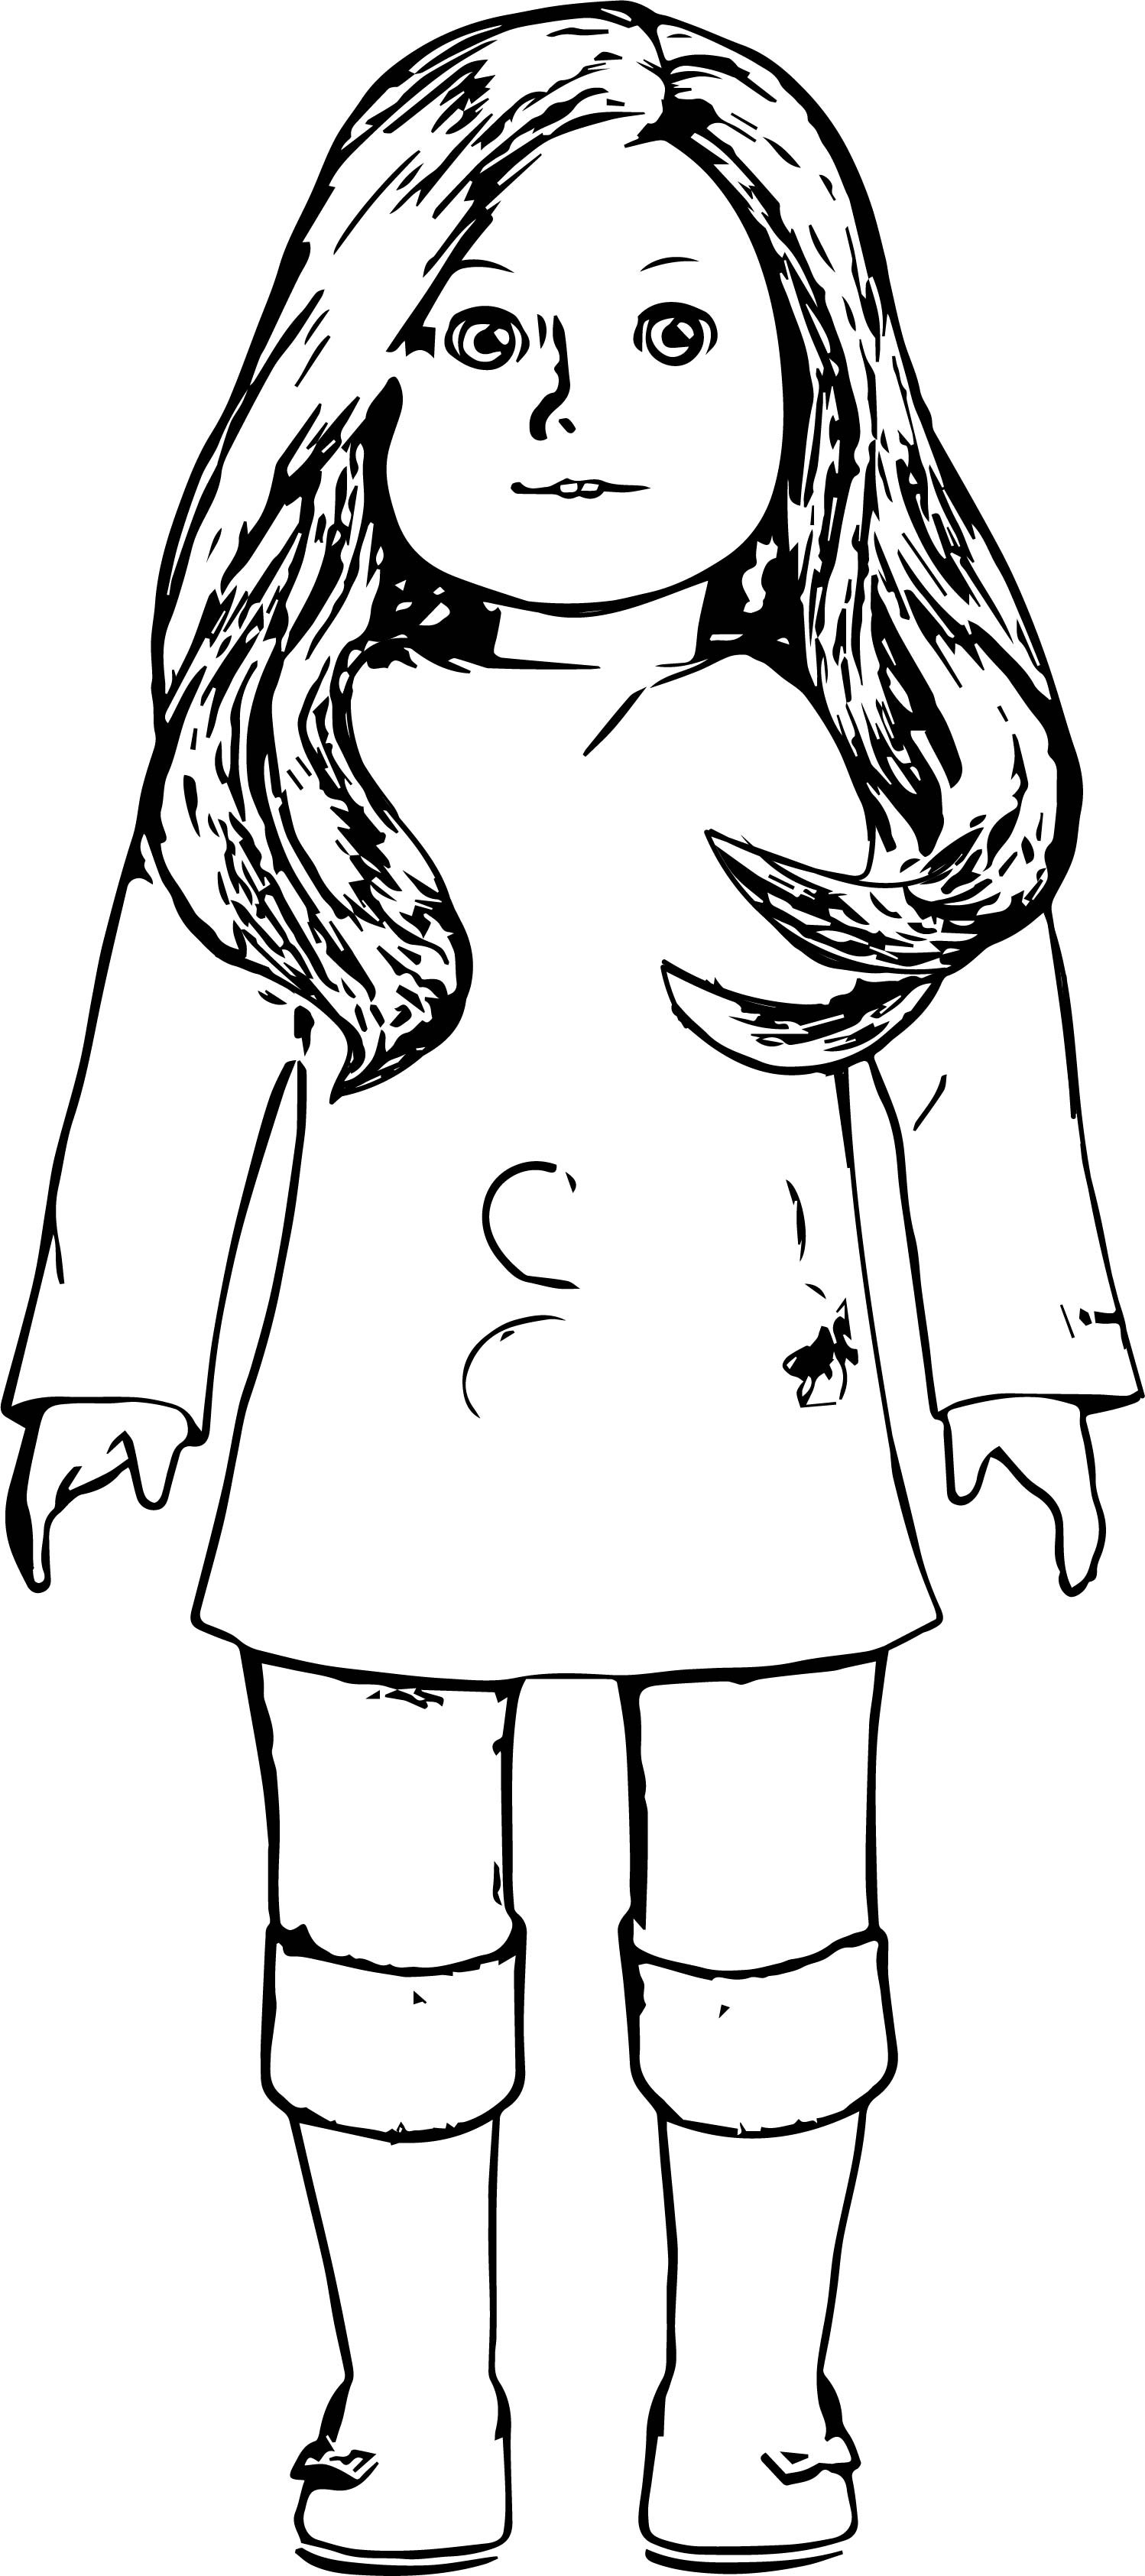 girls coloring coloring pages coloring pages for girls free and printable coloring girls